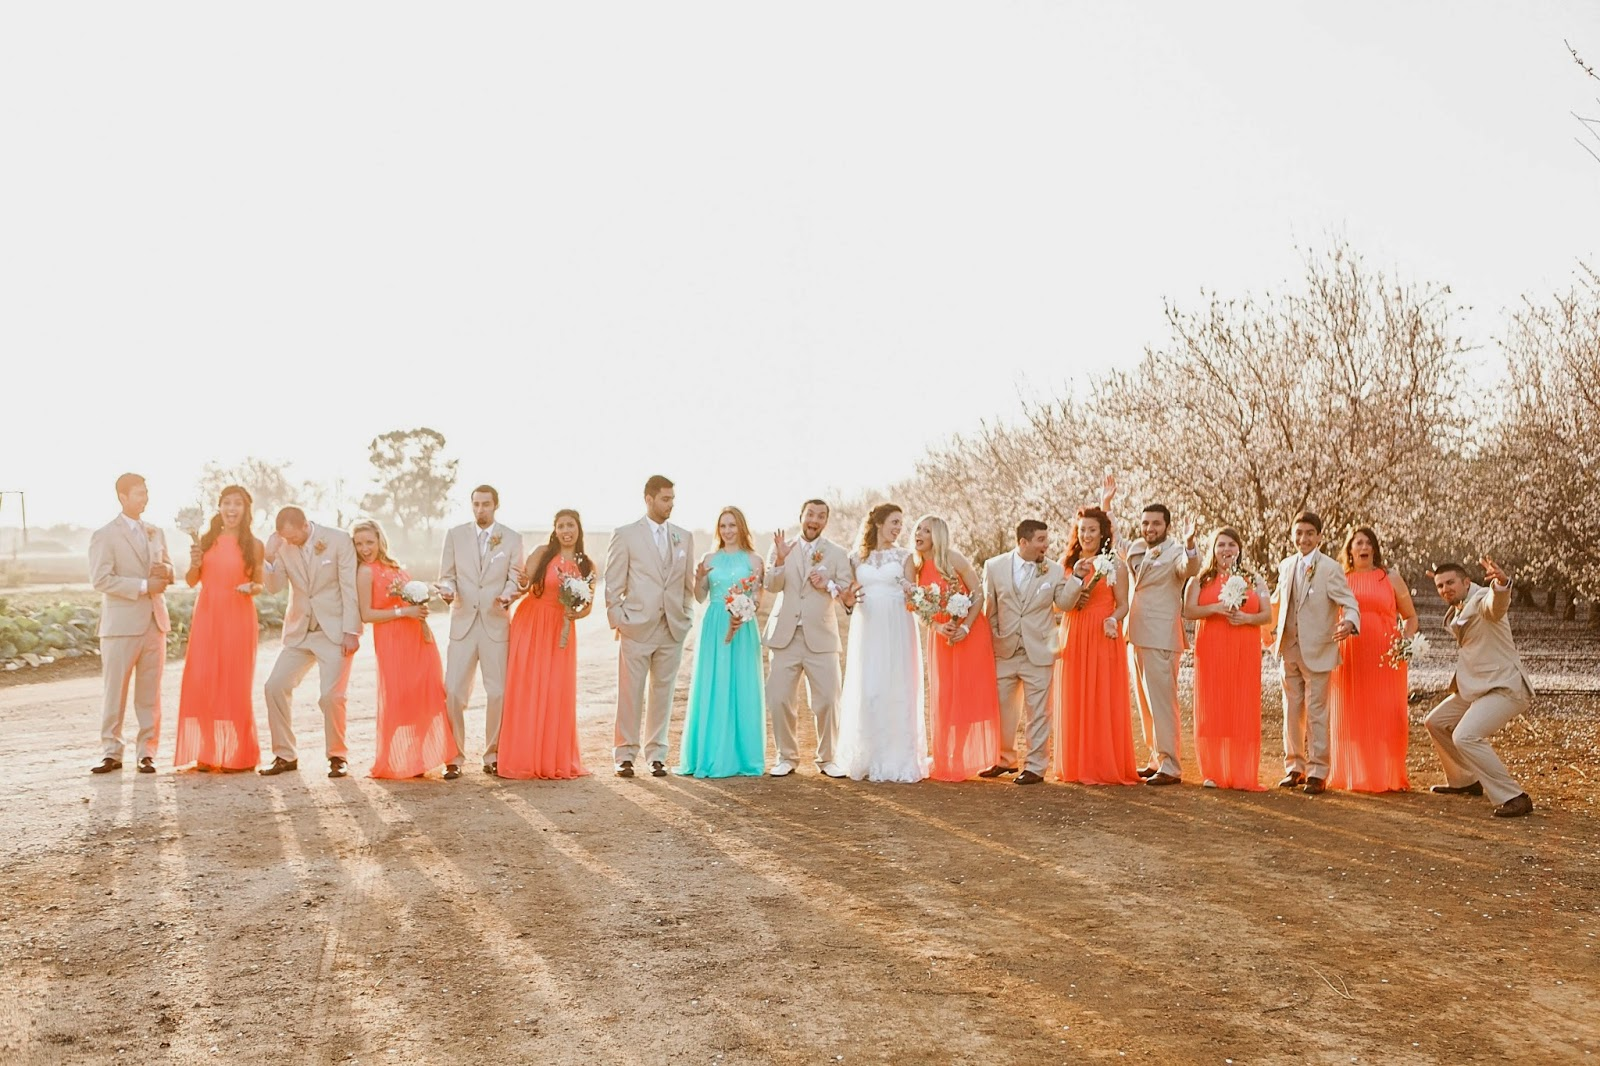 vista ranch and cellars, vista merced, vista ranch merced, , garden wedding, spring outdoor wedding, diy spring wedding, almond blossom wedding, etsy wedding dress, vintage wedding dress, ethereal wedding dress, simple wedding dress, antique wedding dress, diy coral and turquoise wedding, coral and turquoise bridesmaid dress, long bridesmaid dress, tan wedding suits, tan and coral wedding